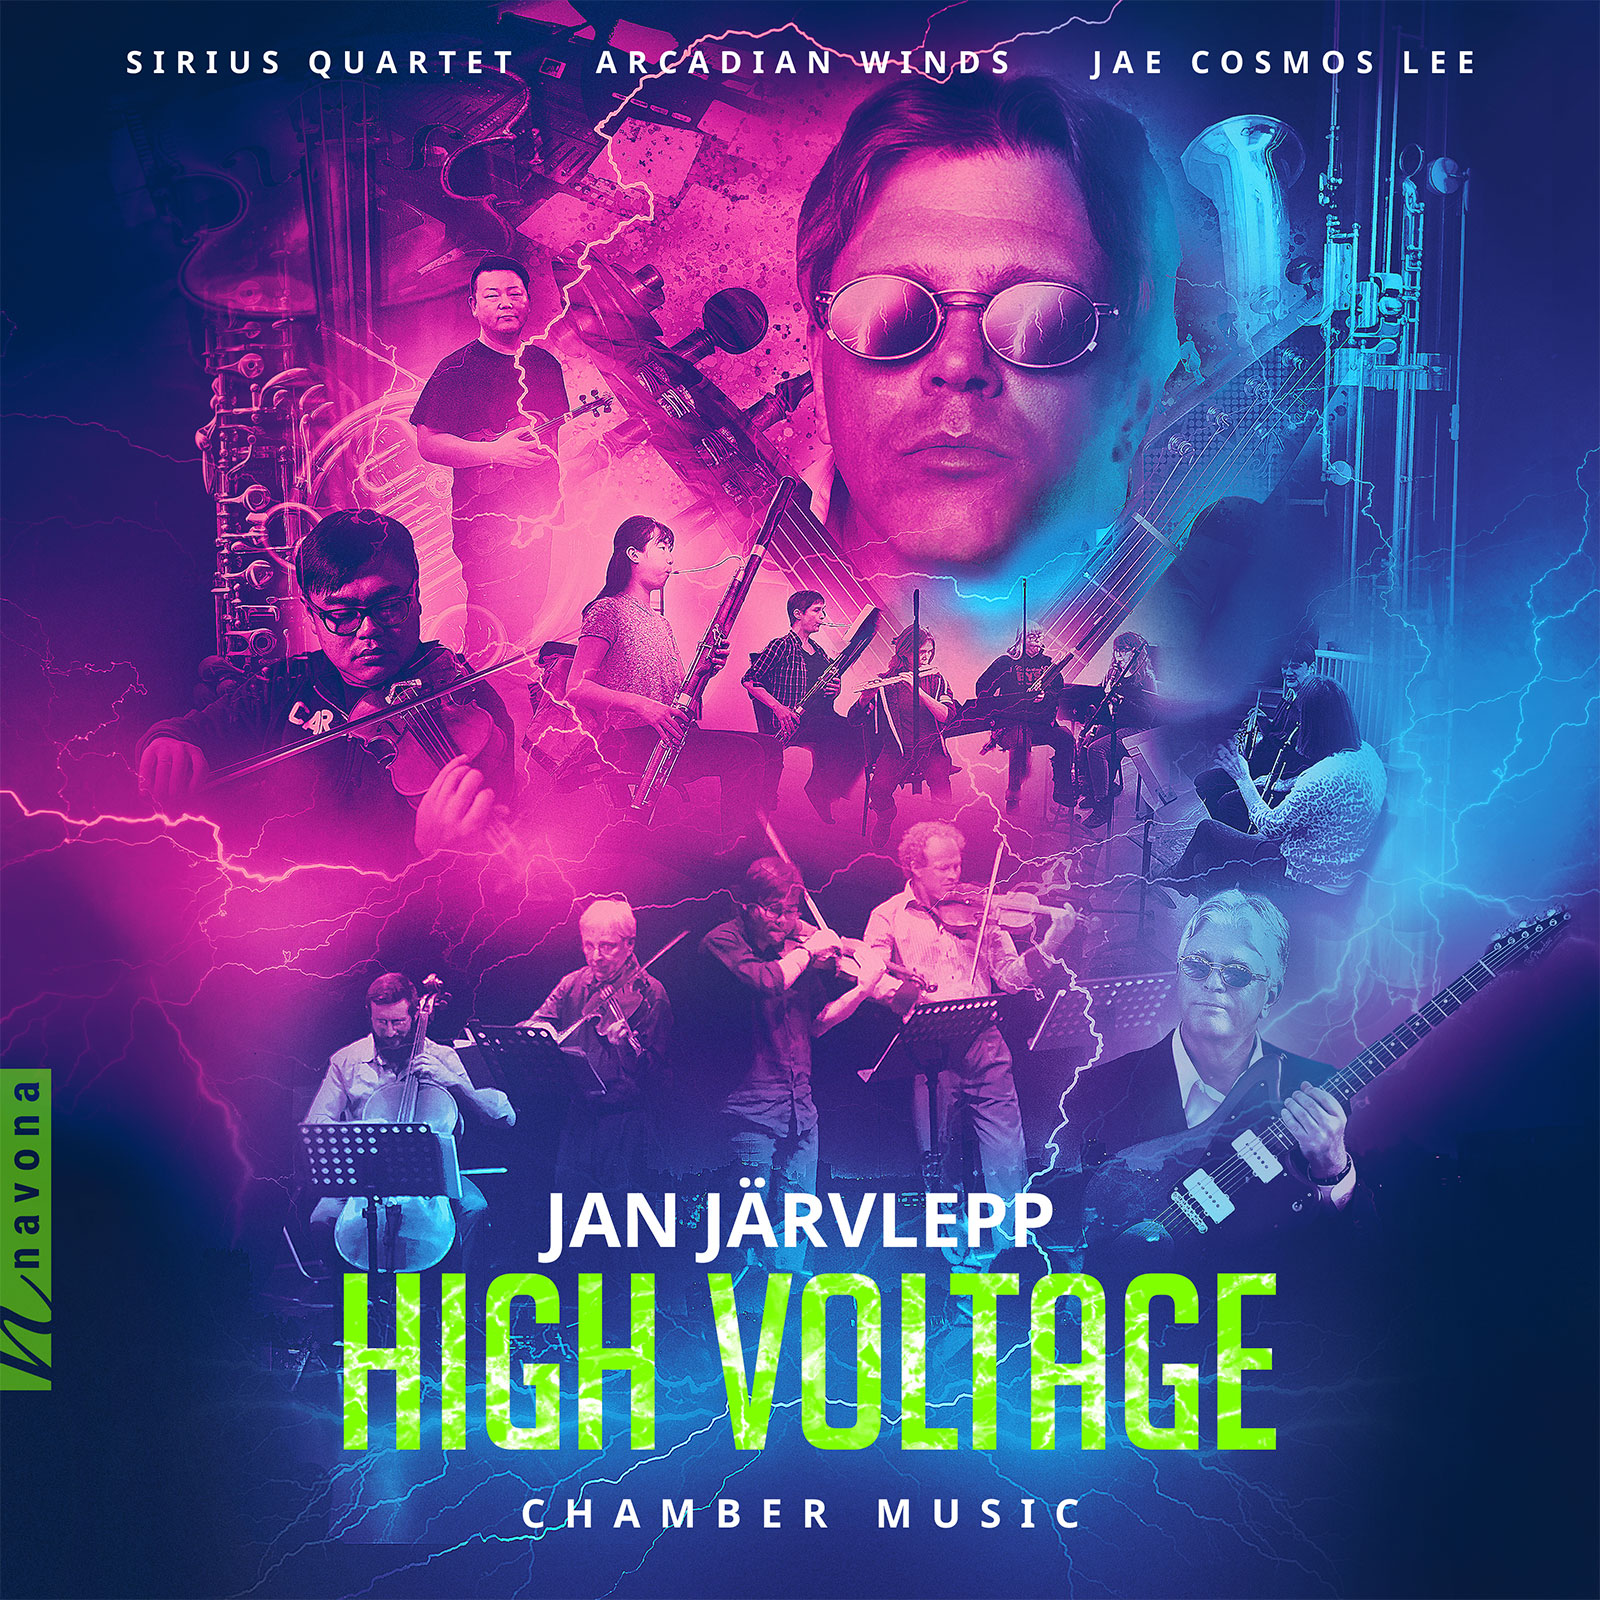 High Voltage Chamber Music